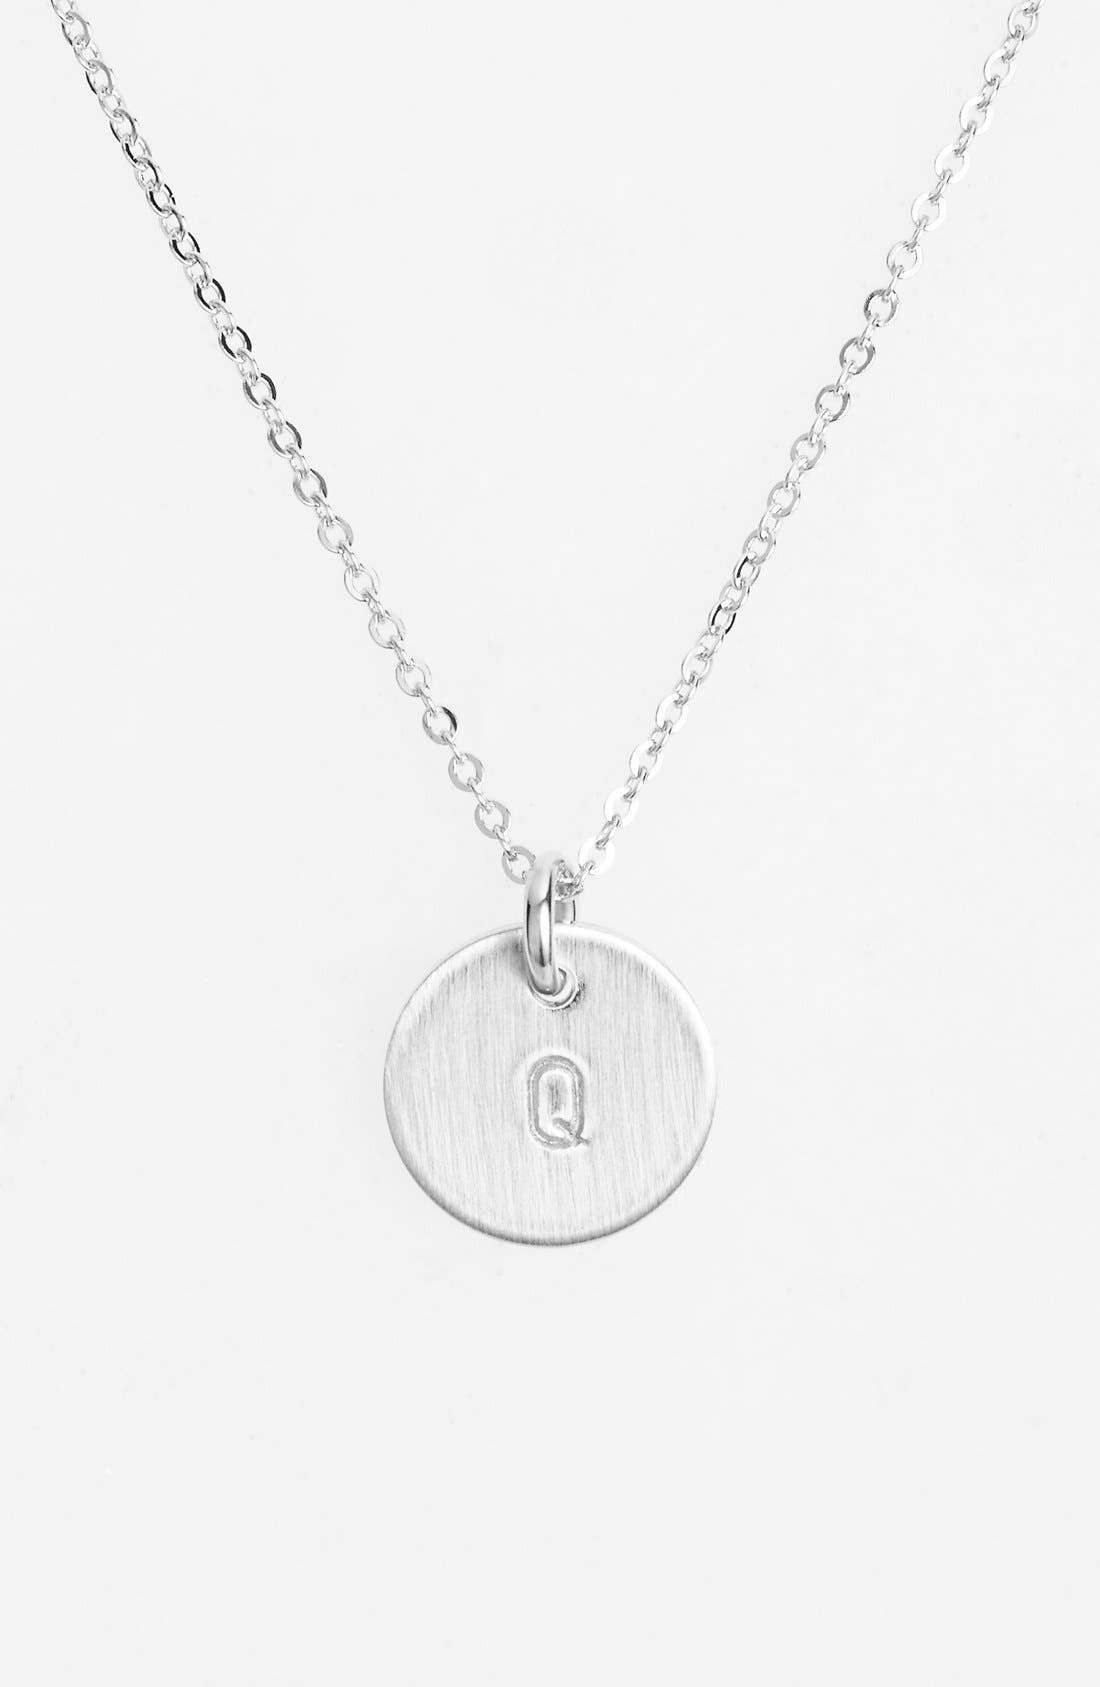 From humble beginnings to a fully staffed warehouse in Bend, Oregon, Nashelle remains true to its original purpose-handmade jewelry crafted with love and intention. The mini-initial necklace is no different, with a small hand-stamped pendant suspended from a delicate chain for a dainty effect. Style Name: Nashelle Sterling Silver Initial Mini Disc Necklace. Style Number: 1016123. Available in stores.